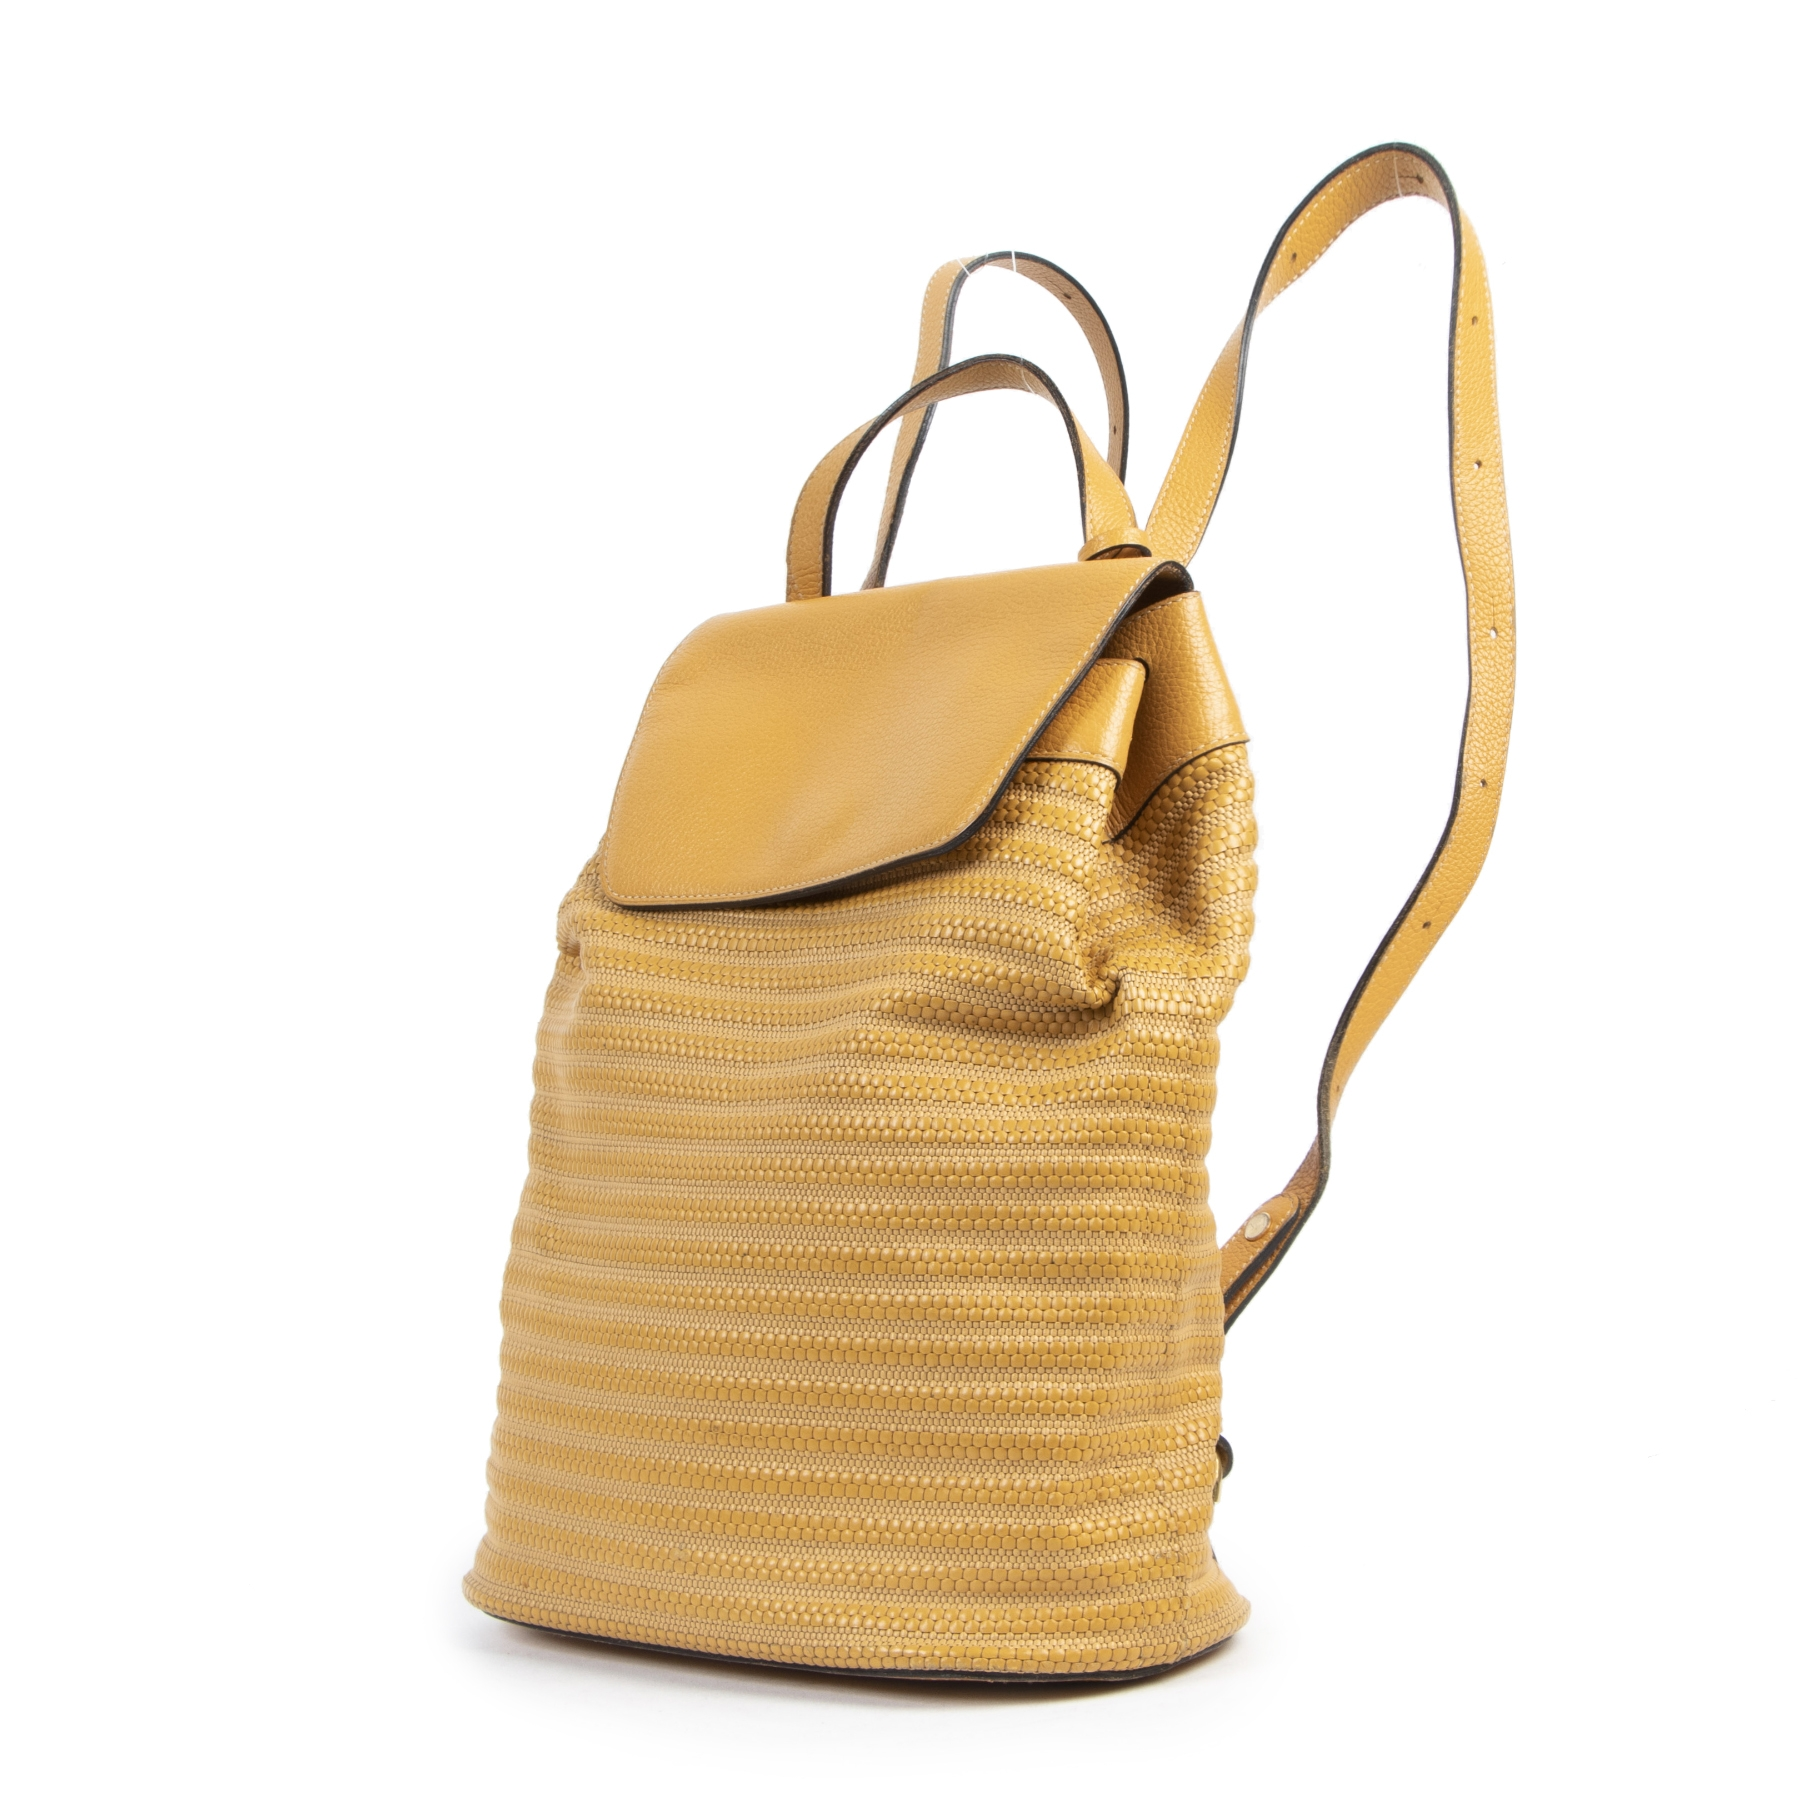 Buy authentic secondhand Delvaux Yellow Toile De Cuir Back Pack at the right price at LabelLOV vintage webshop. Safe and secure online shopping. Koop authentieke tweedehands Delvaux Yellow Toile De Cuir Back Pack met